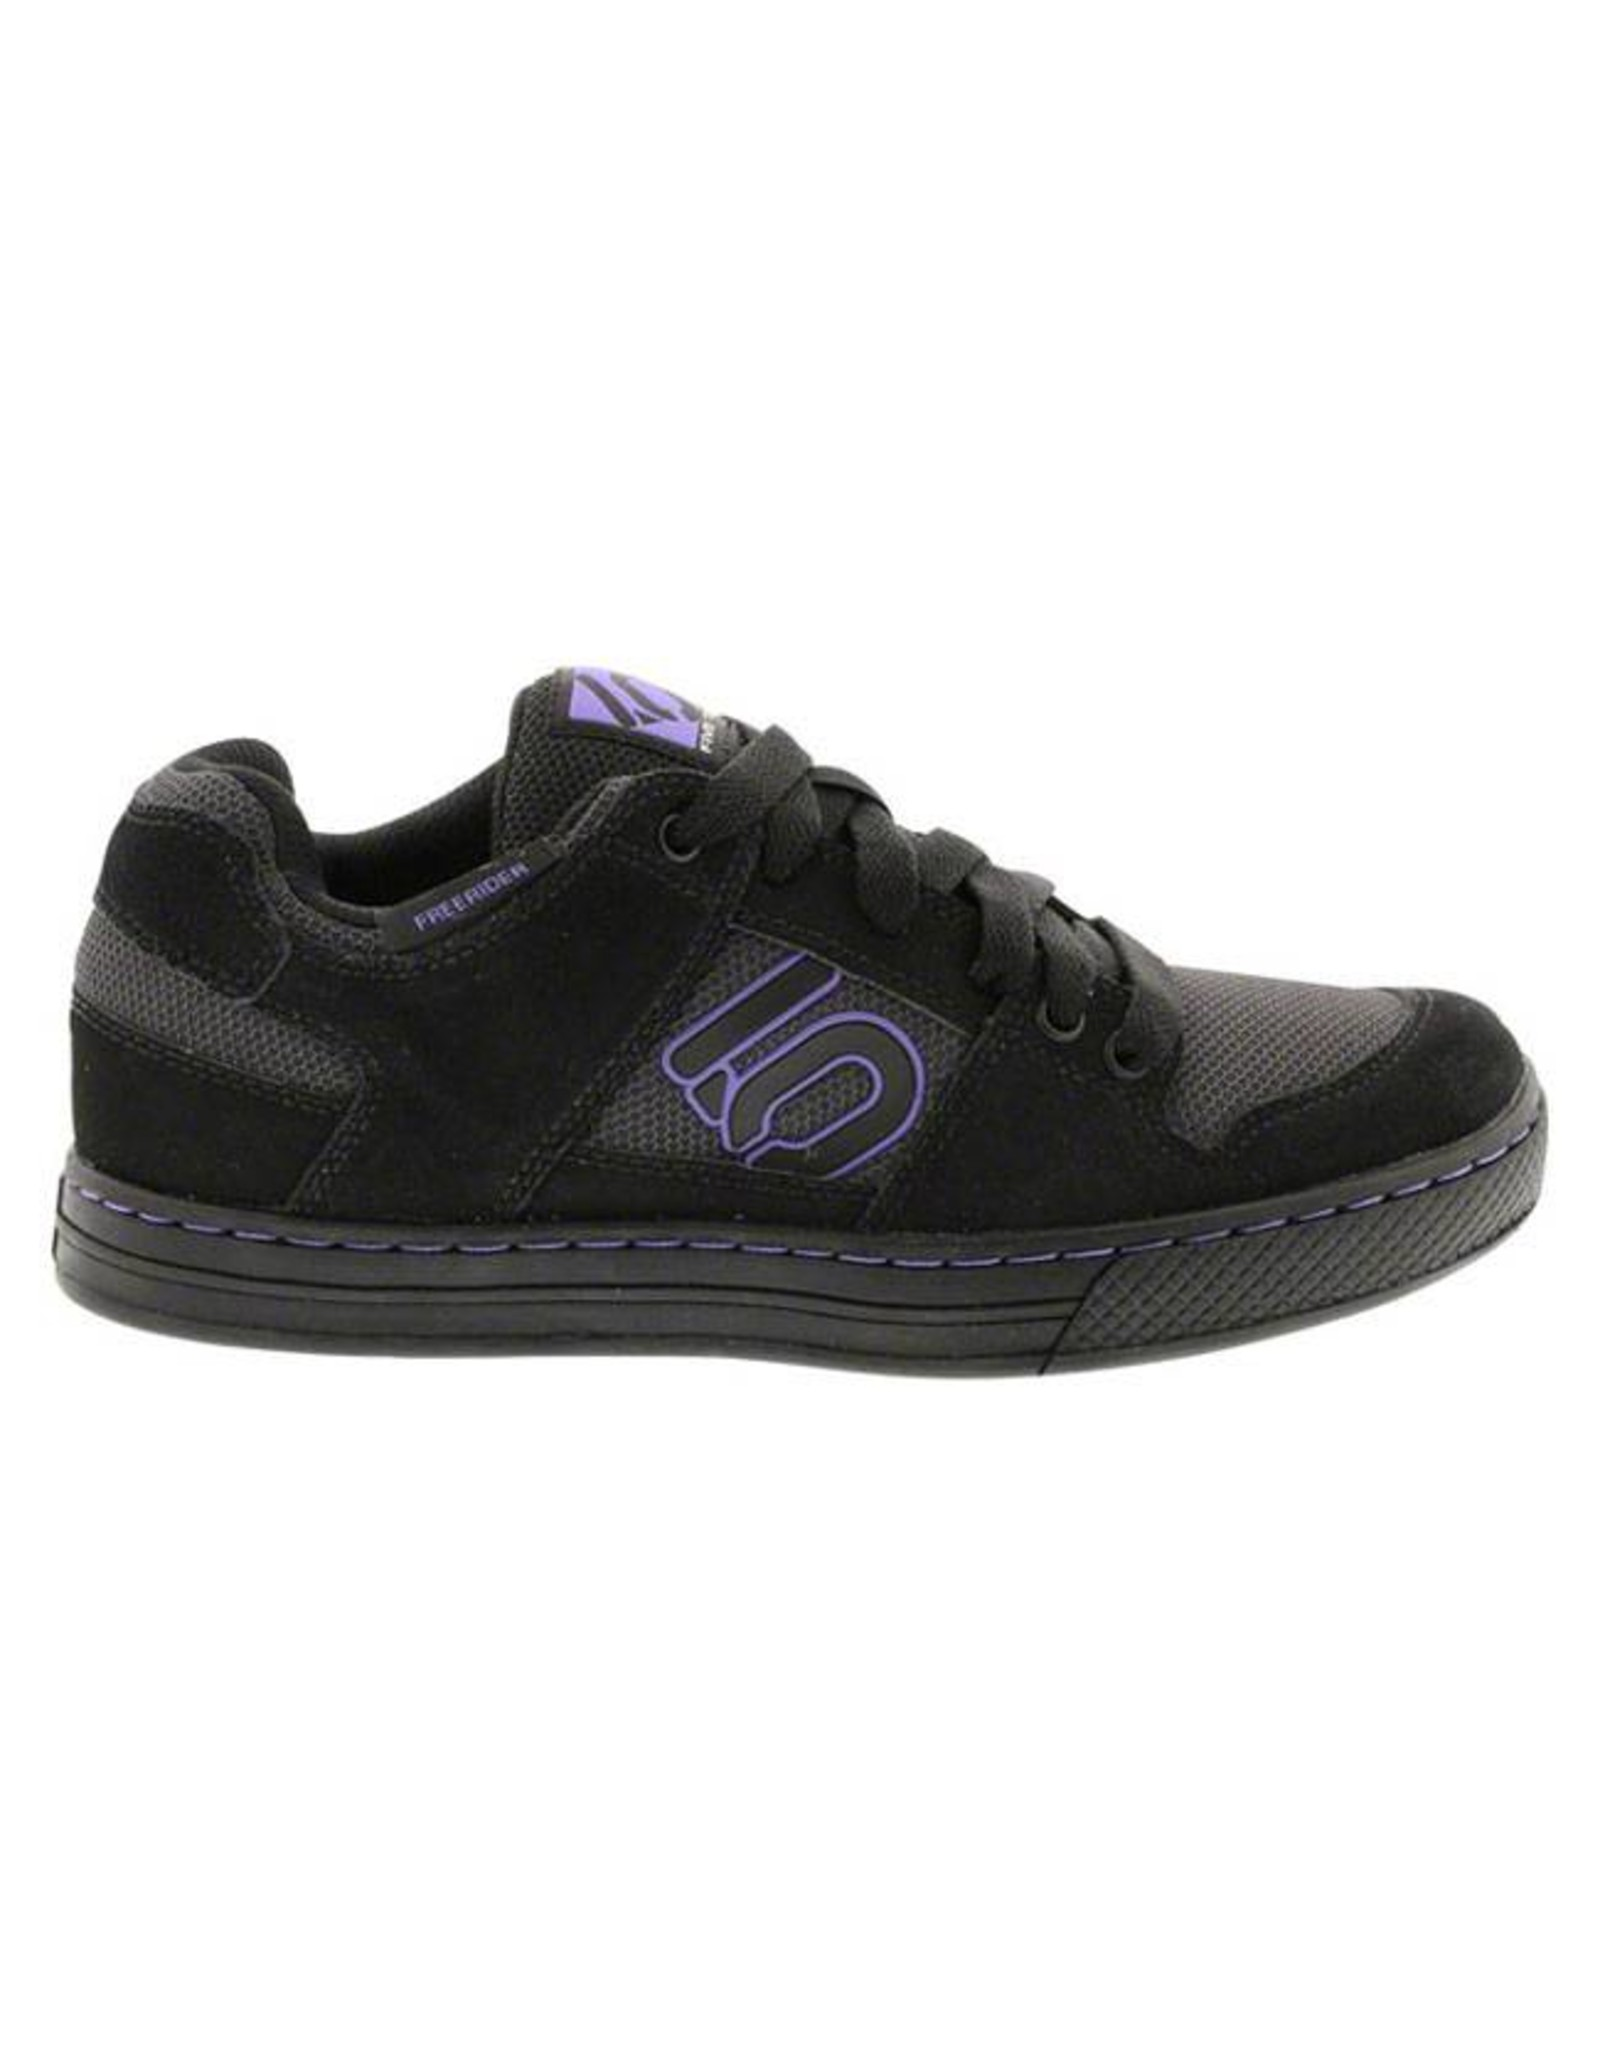 Five Ten Five Ten Freerider Women's Flat Pedal Shoe: Black/Purple 9.5